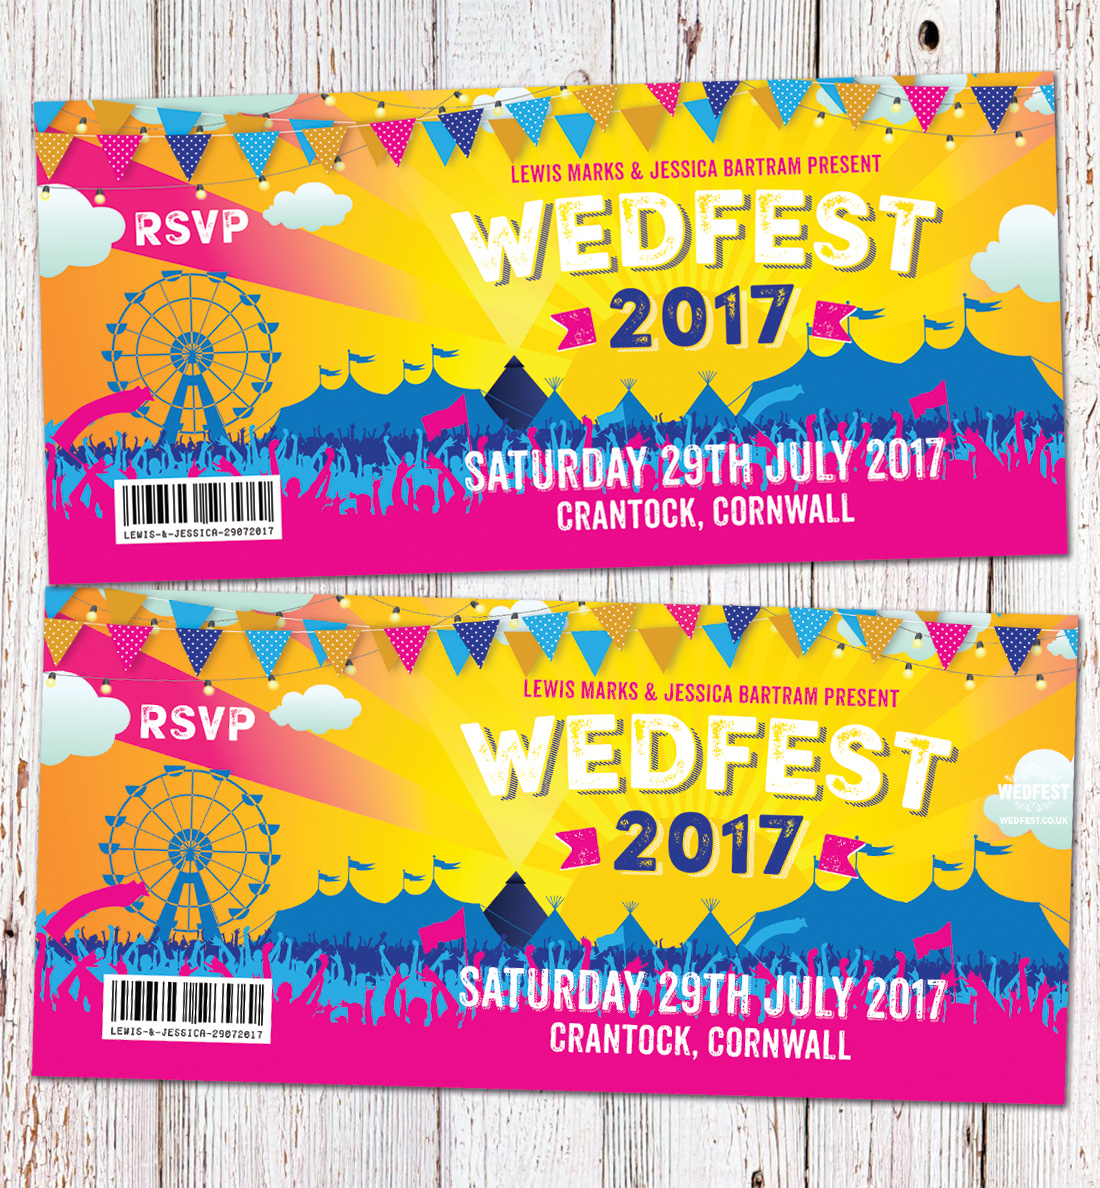 irish wedfest festival wedding invites